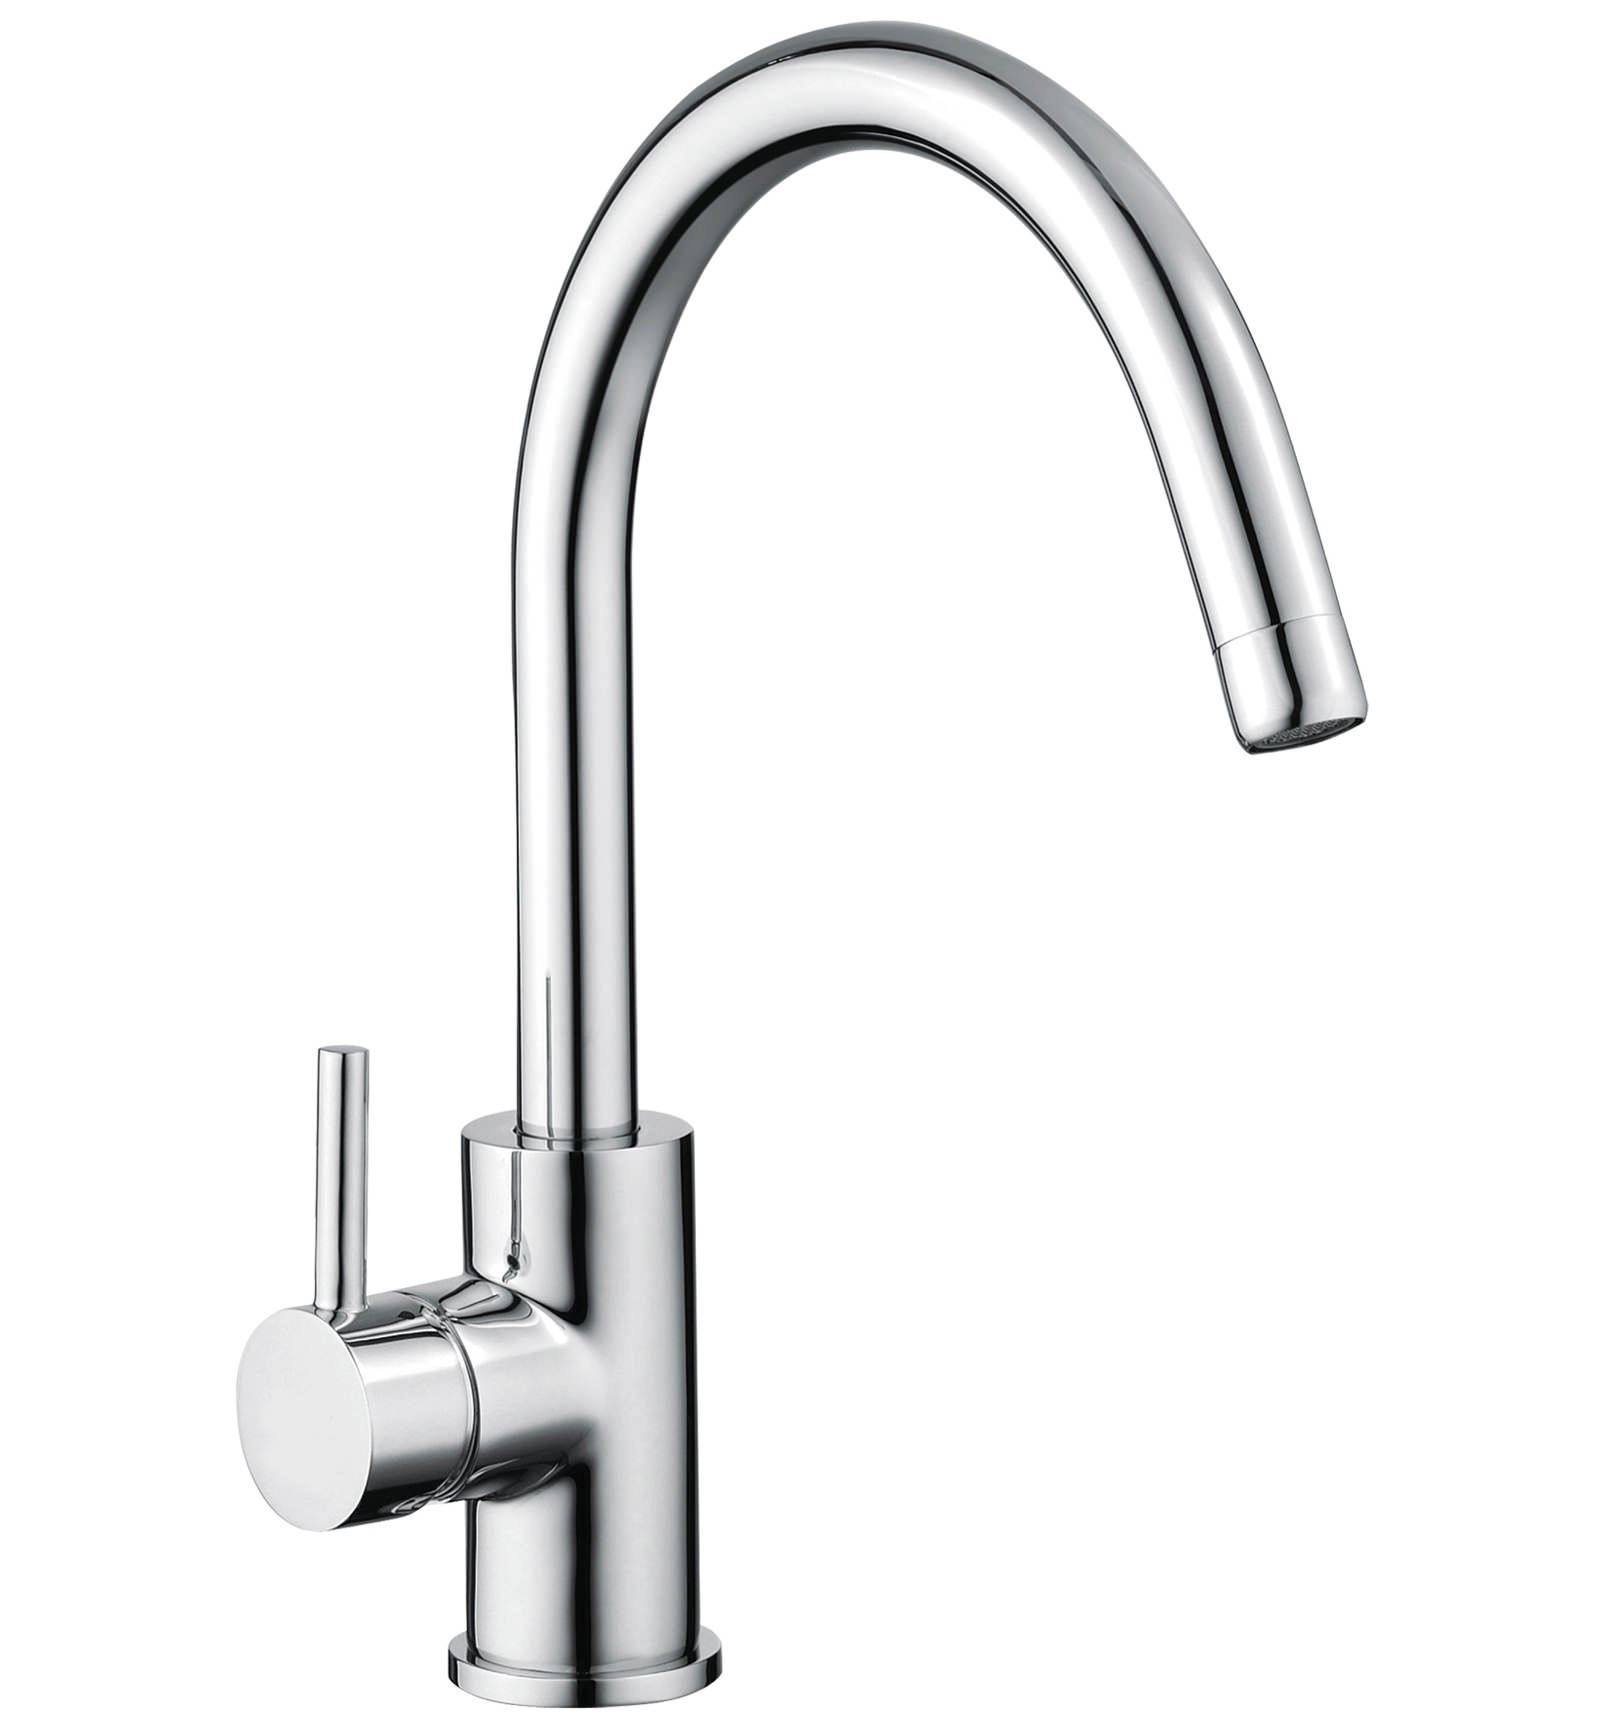 Sagittarius Ergo Side Lever Monobloc Kitchen Sink Mixer Tap | EL/155/C